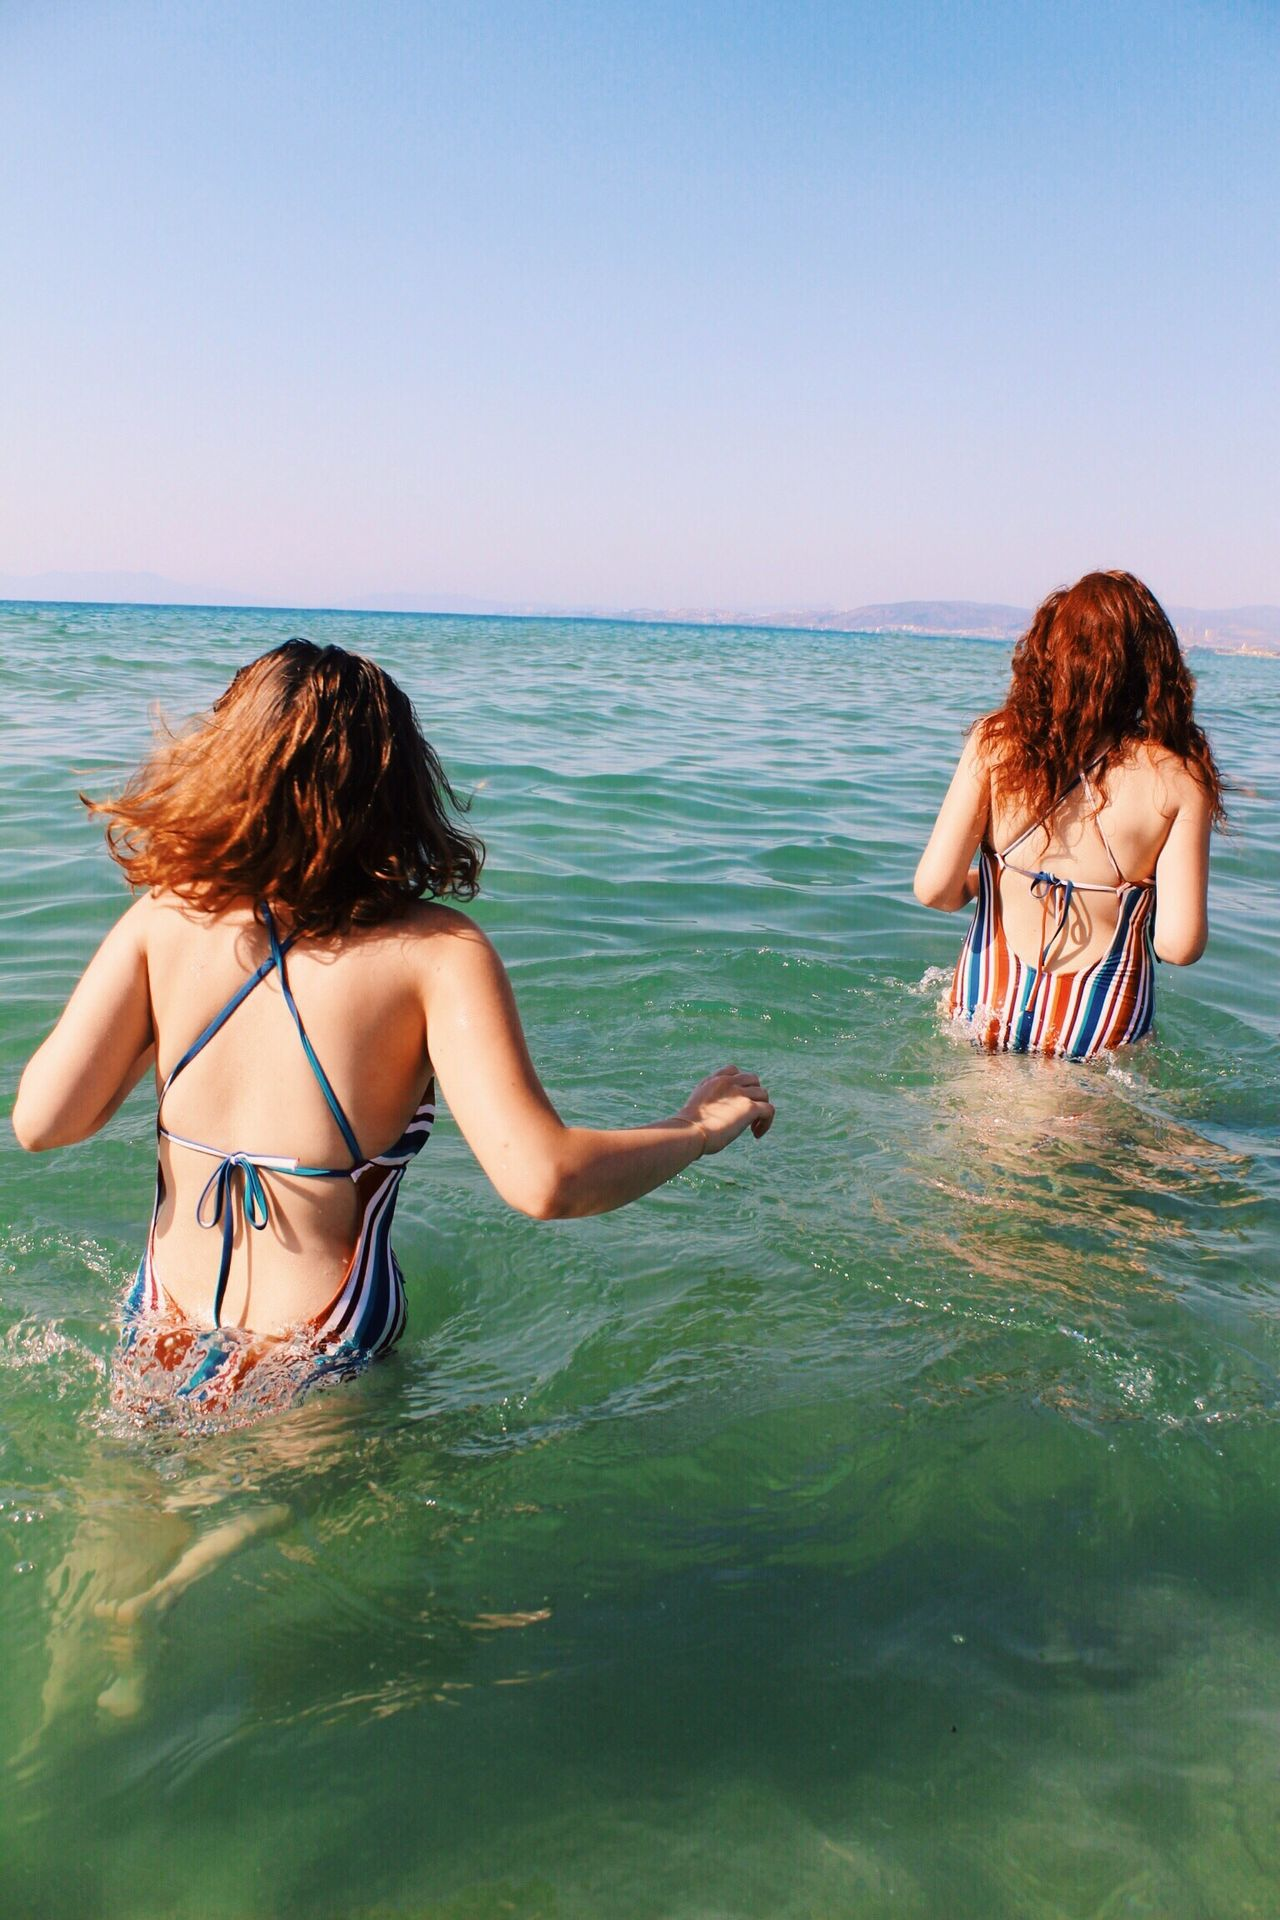 Rear view of young women wading into water